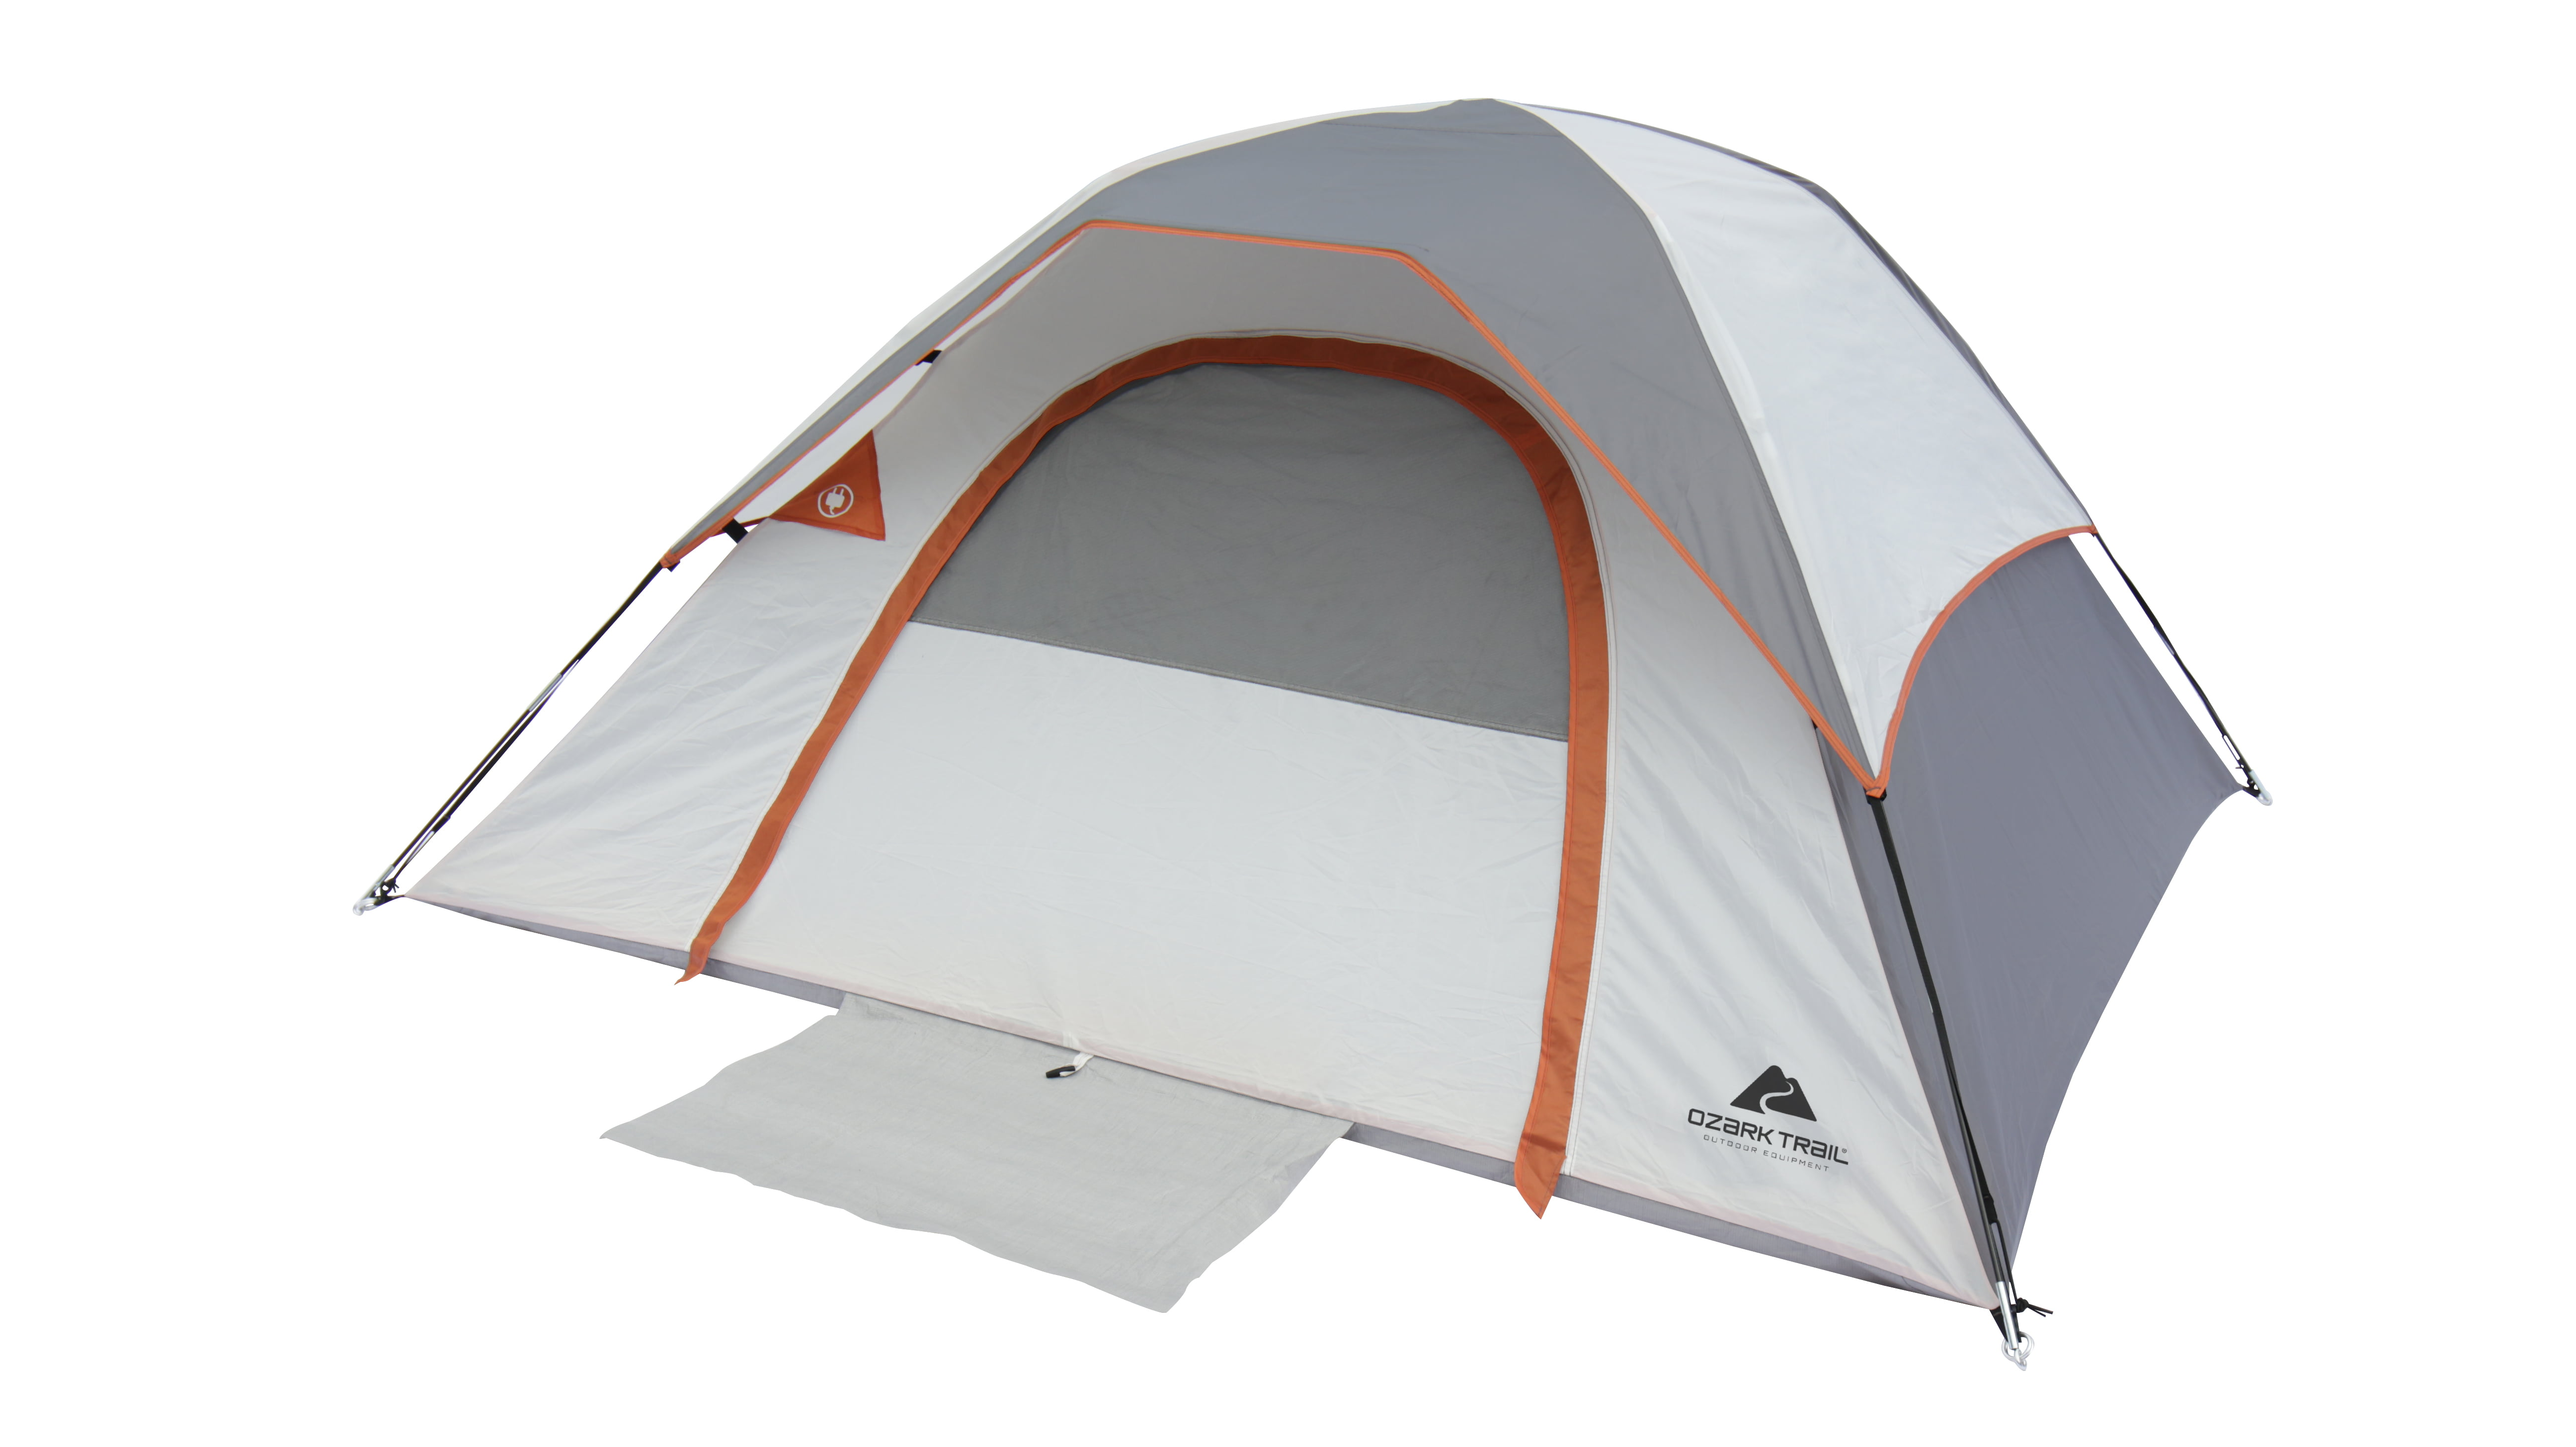 How Much Does It Cost To Have A Best Budget Backpacking Tent?